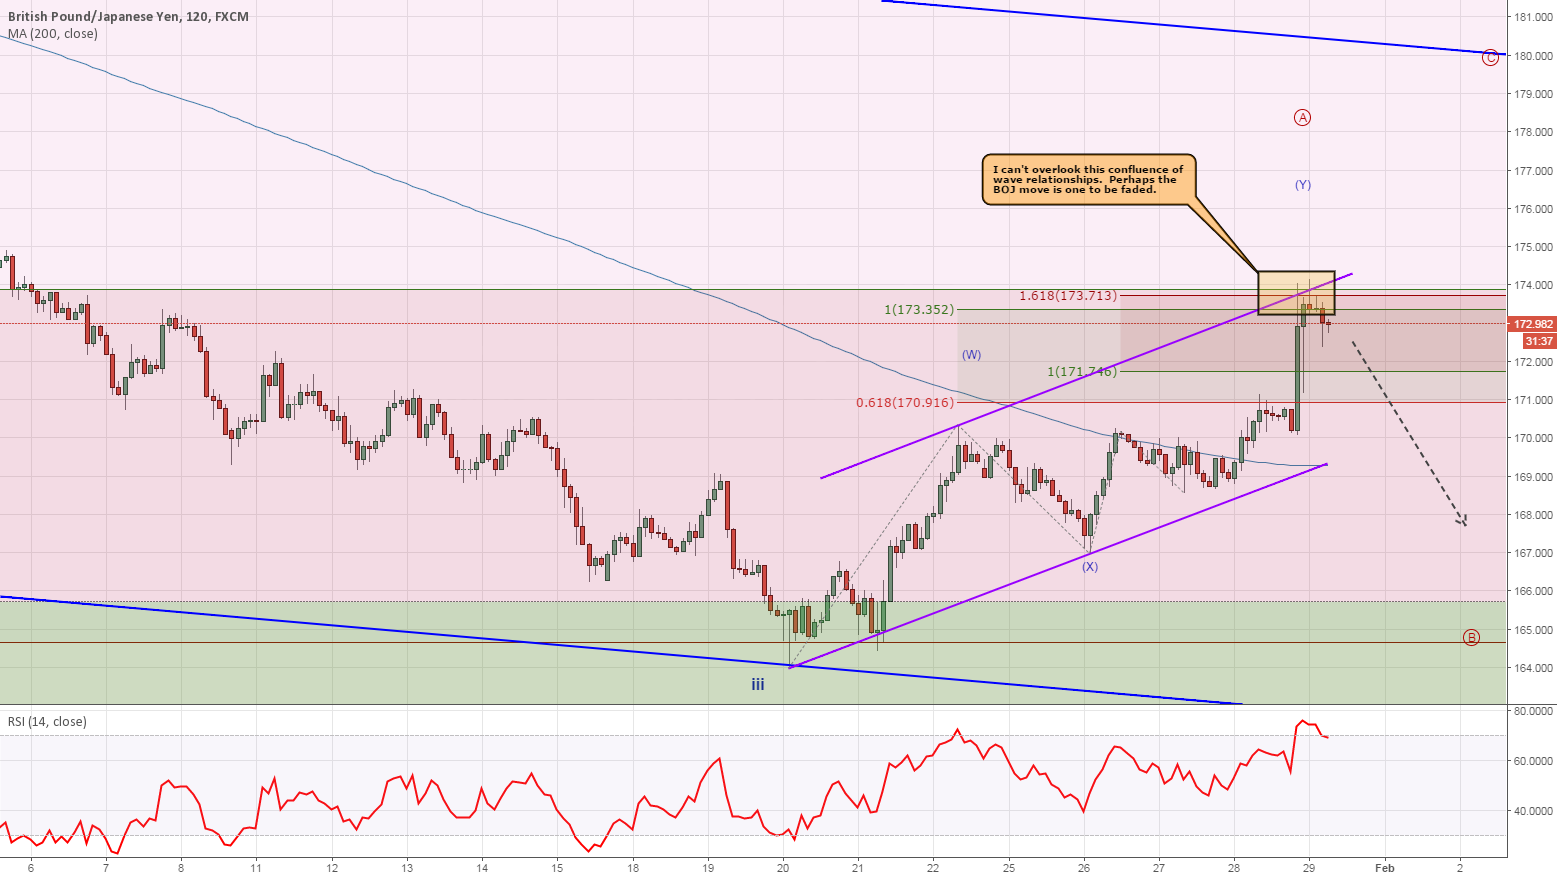 GBPJPY Tags Measured Waves - Higher Probability of Sell Off